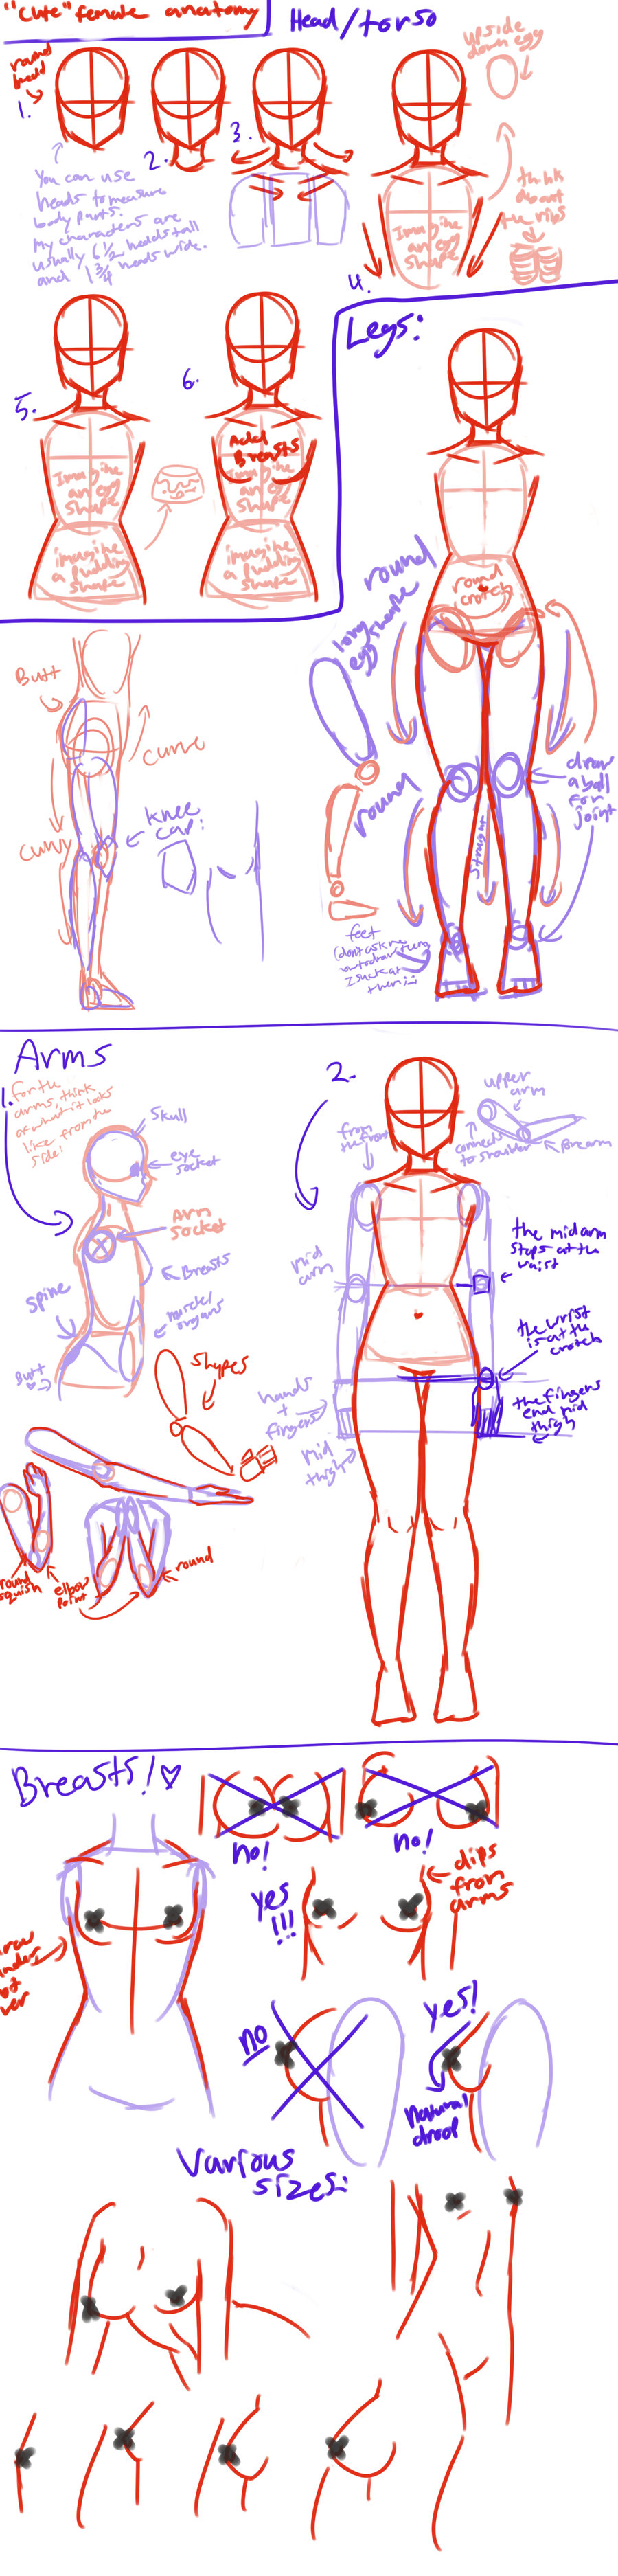 Cute female anatomy tutorial by angeliccarrot deviantart com on deviantart